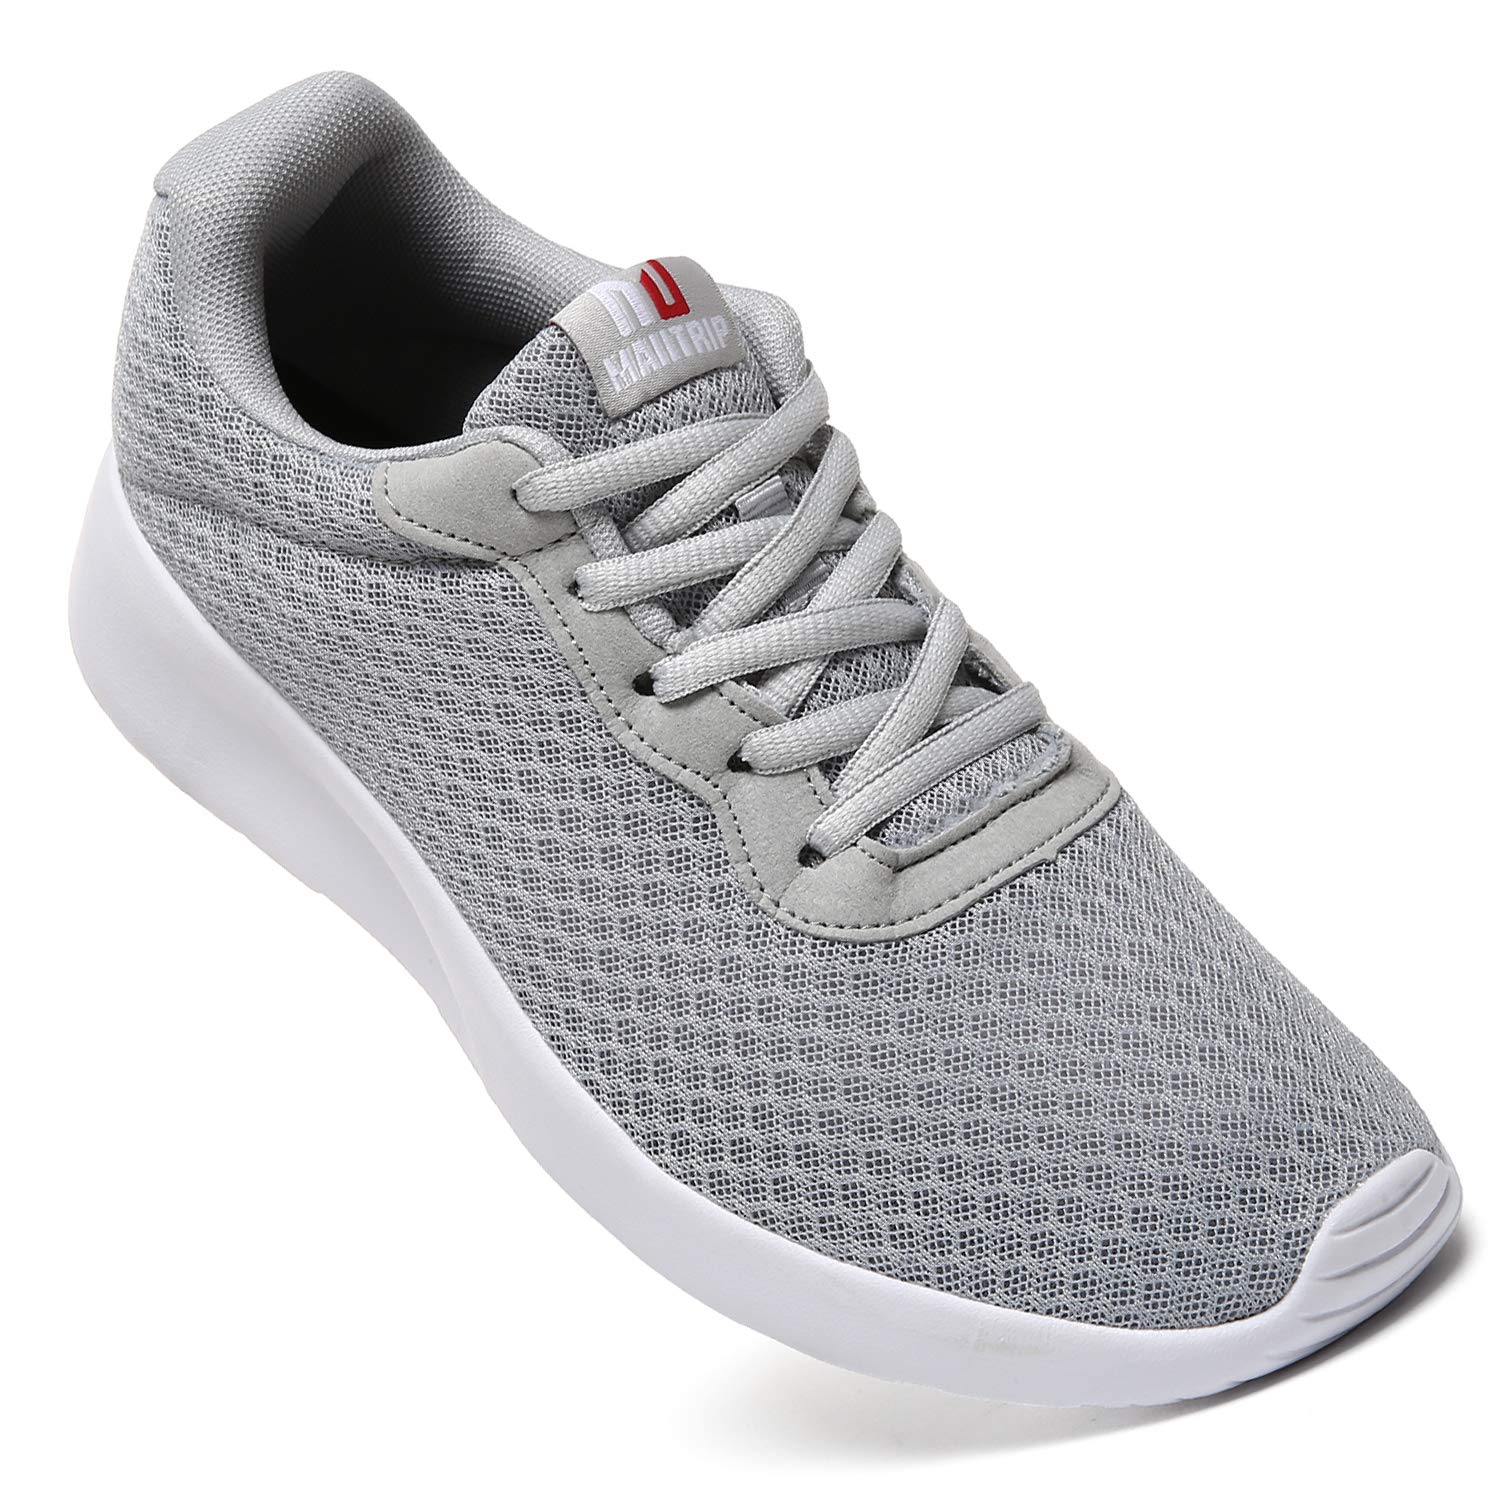 MAITRIP Mens Gym Shoes,Athletic Running Shoes,Lightweight Breathable Mesh Casual Tennis Sports Workout Walking Sneakers,Grey,Size 7